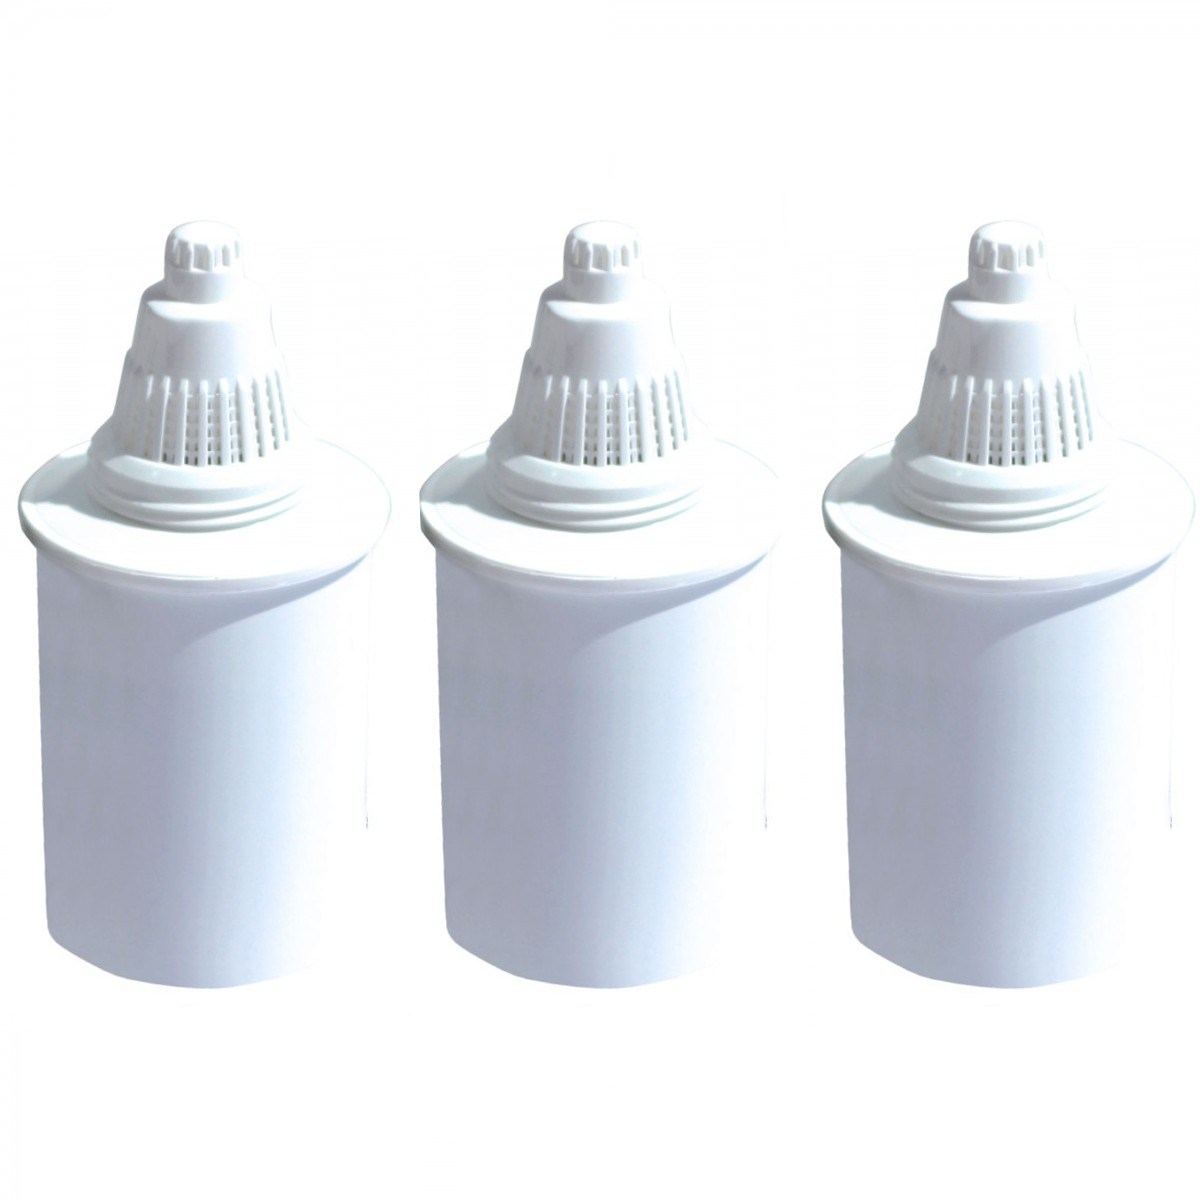 30027 New Wave Enviro Barrier Replacement Filter 3 Pack